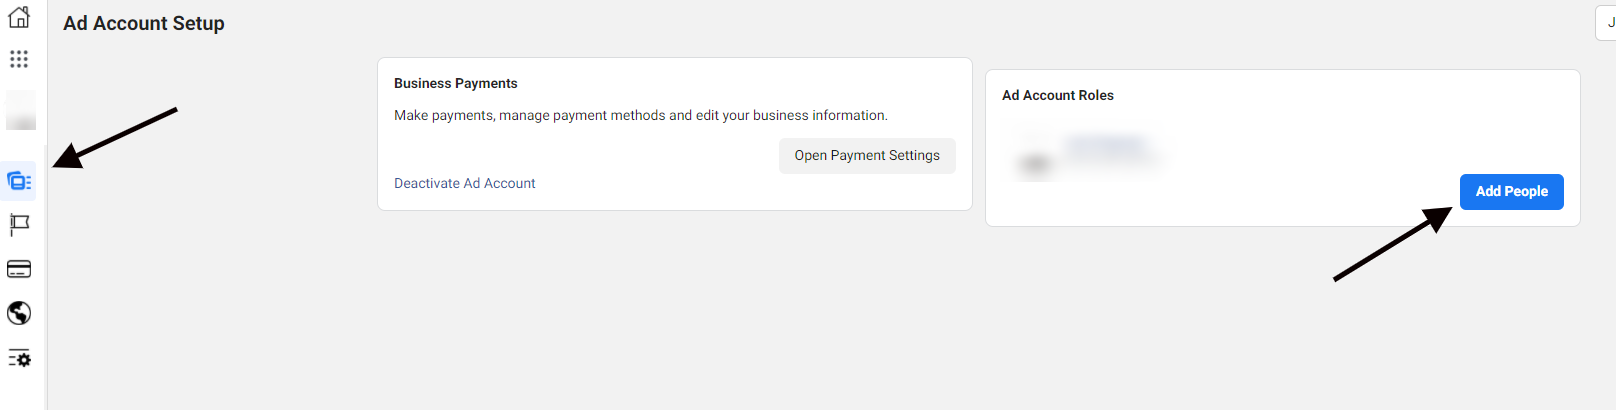 """Ad Account Setup: """"Add People"""" button in Ad Account Roles"""